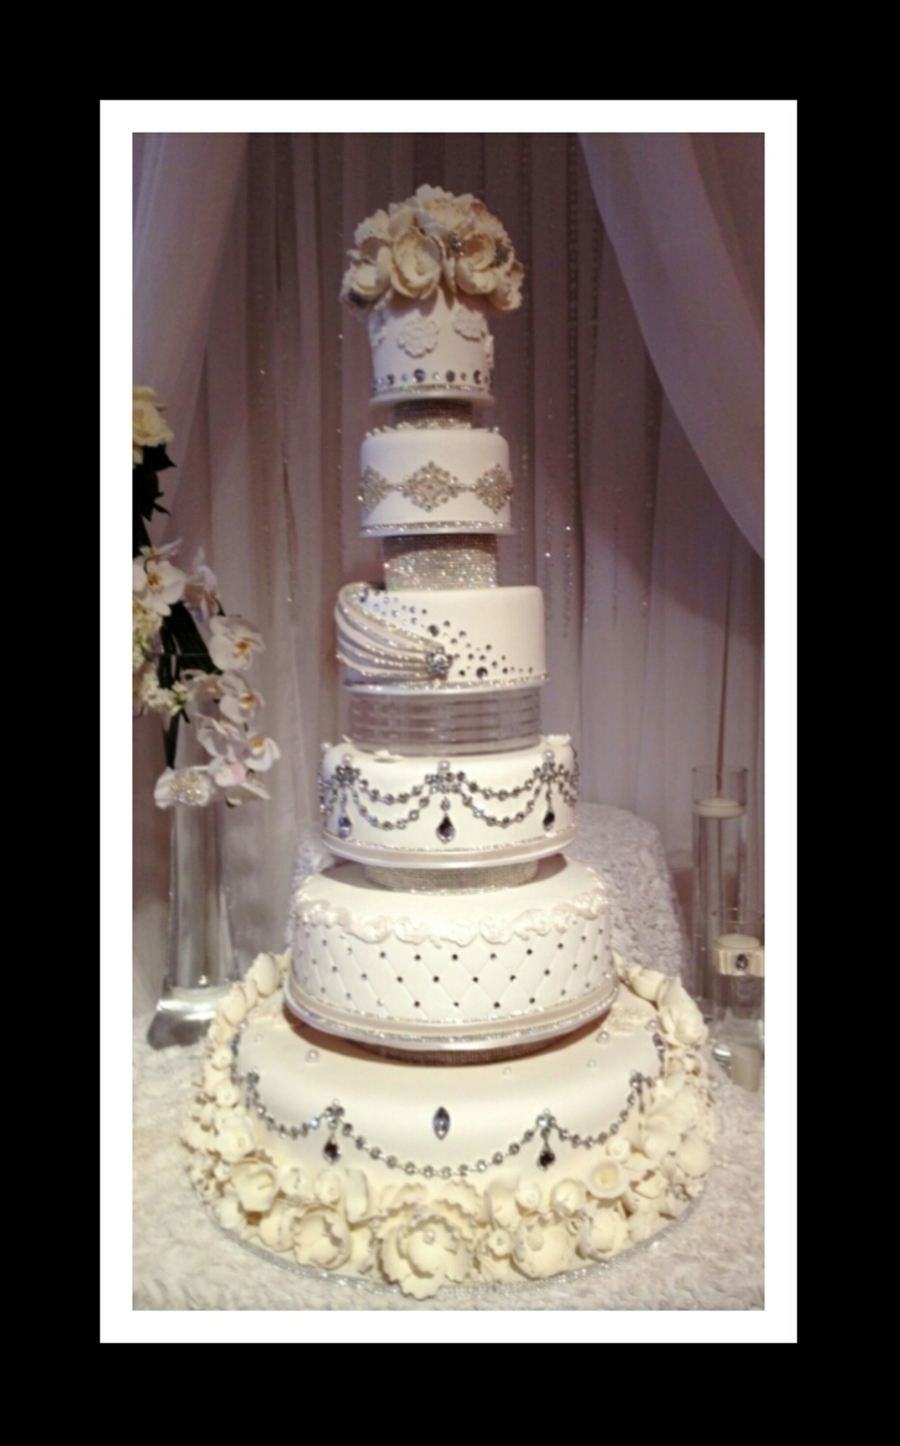 Stunningggg By Royal Cakes on Cake Central